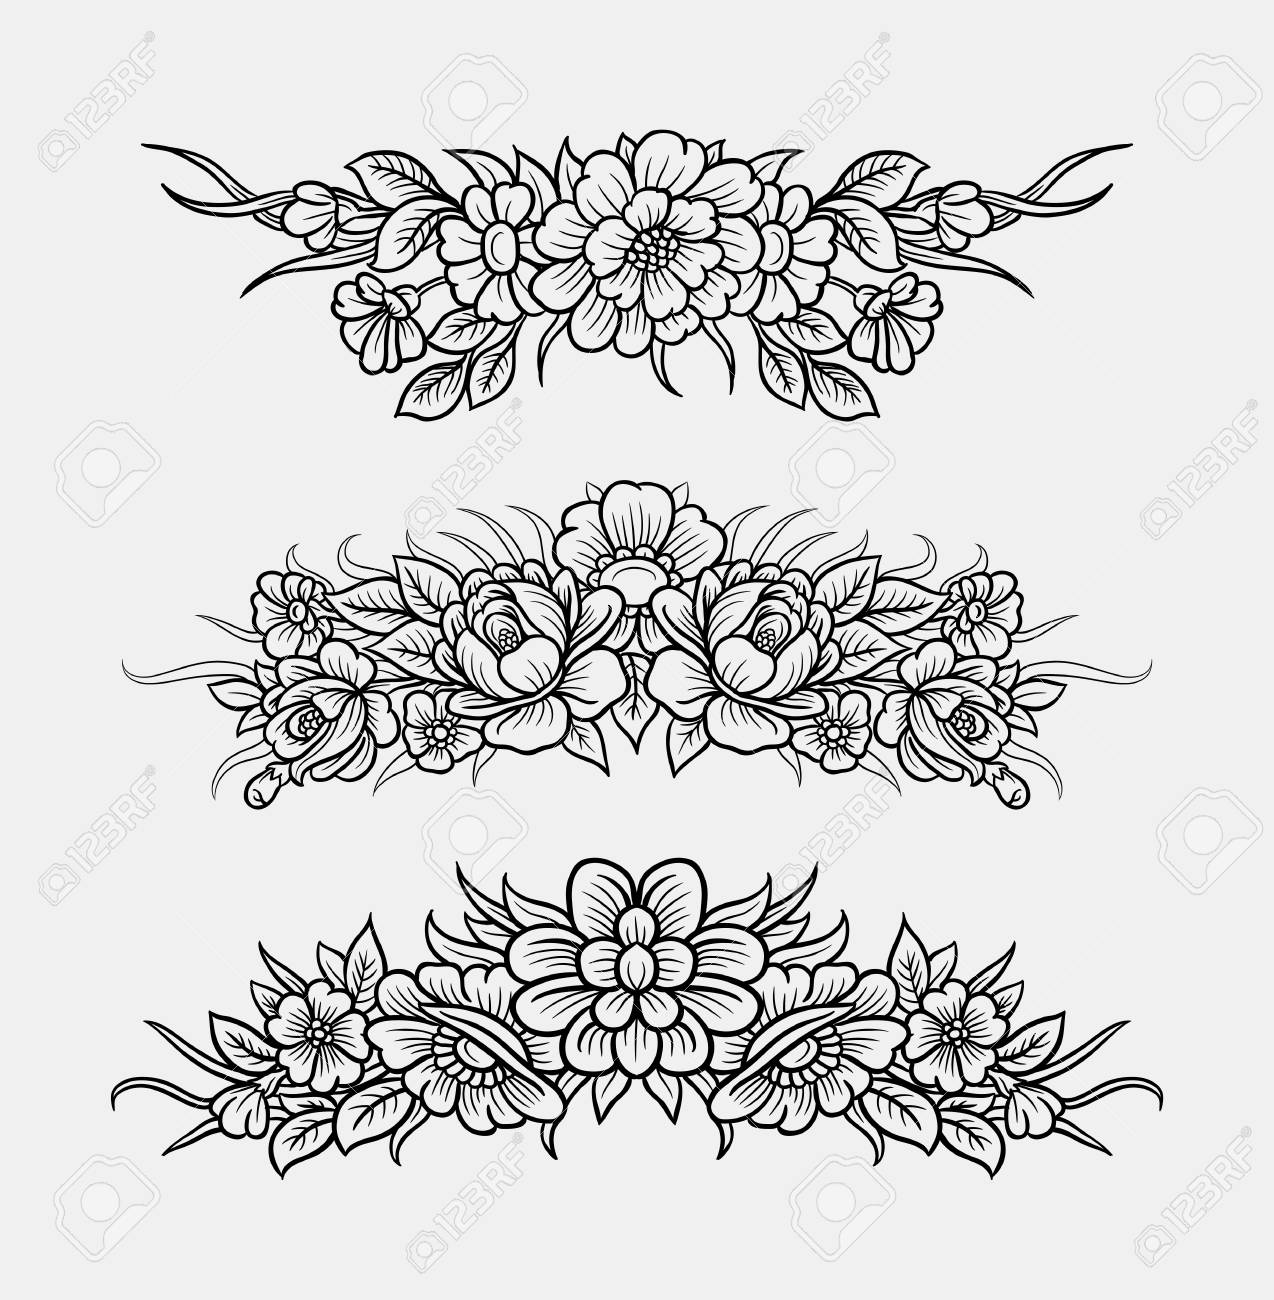 Flower And Leaves Ornament Decoration Line Art Drawing Style Good Use For Symbol Web